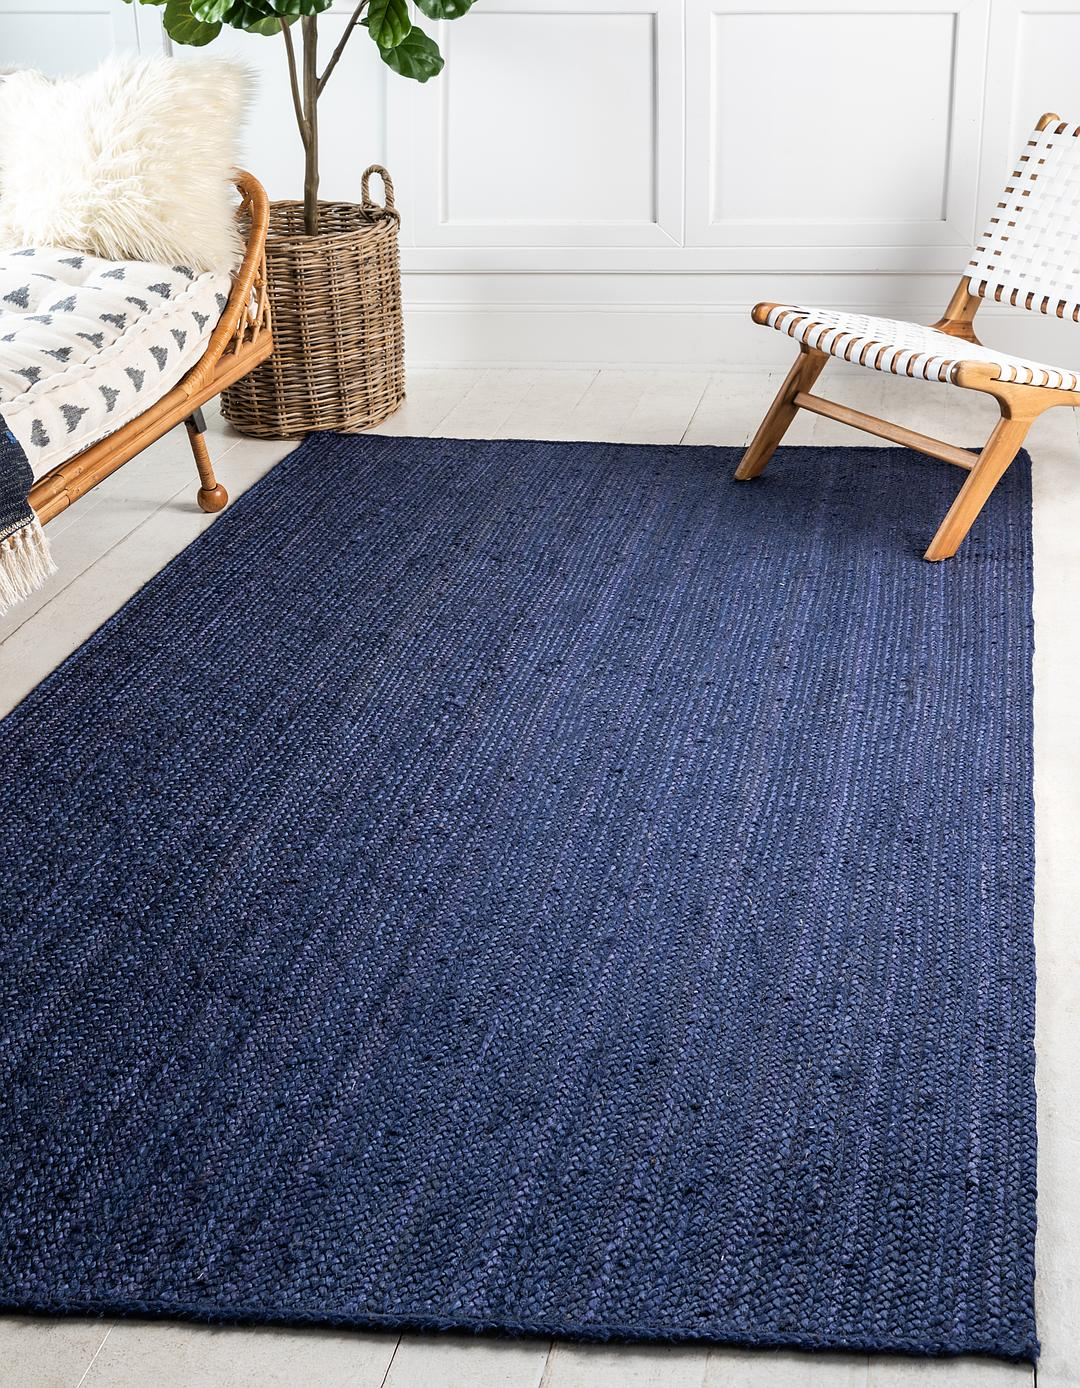 Navy Blue 8 X 10 Braided Jute Rug Area Rugs Handknotted Com